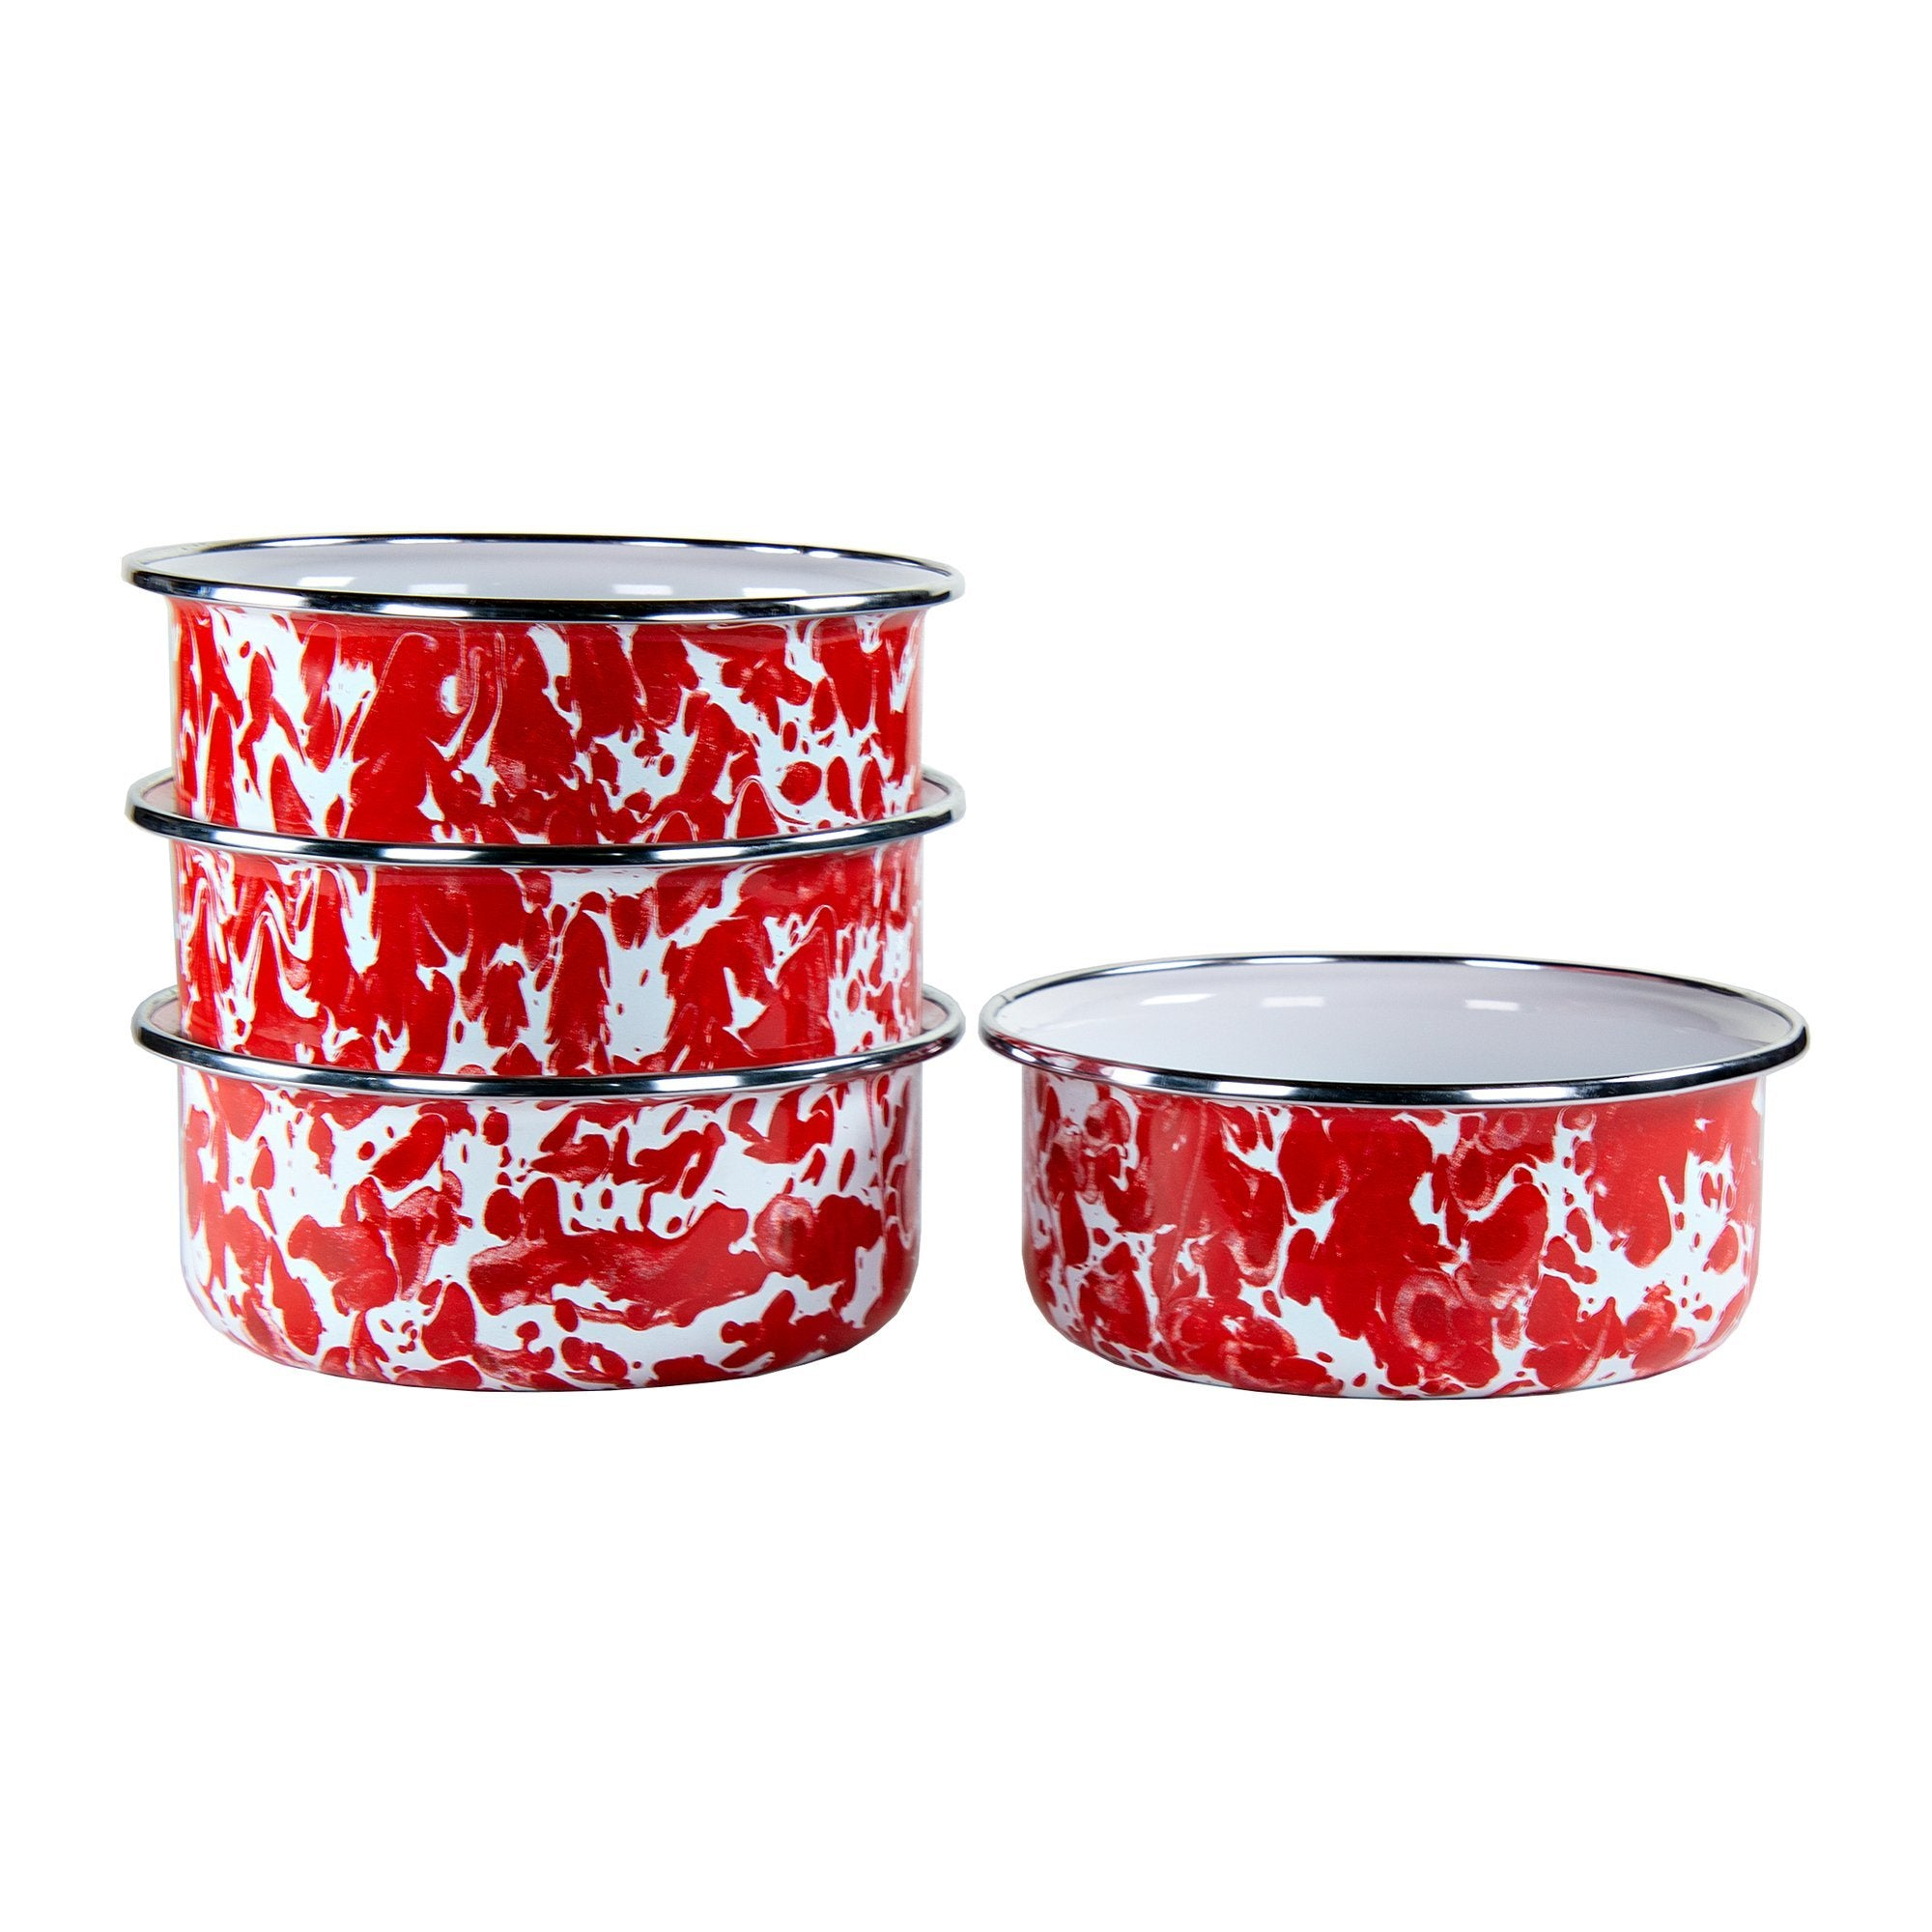 RD60S4 - Set of 4 - Enamelware Red Swirl - Soup Bowls